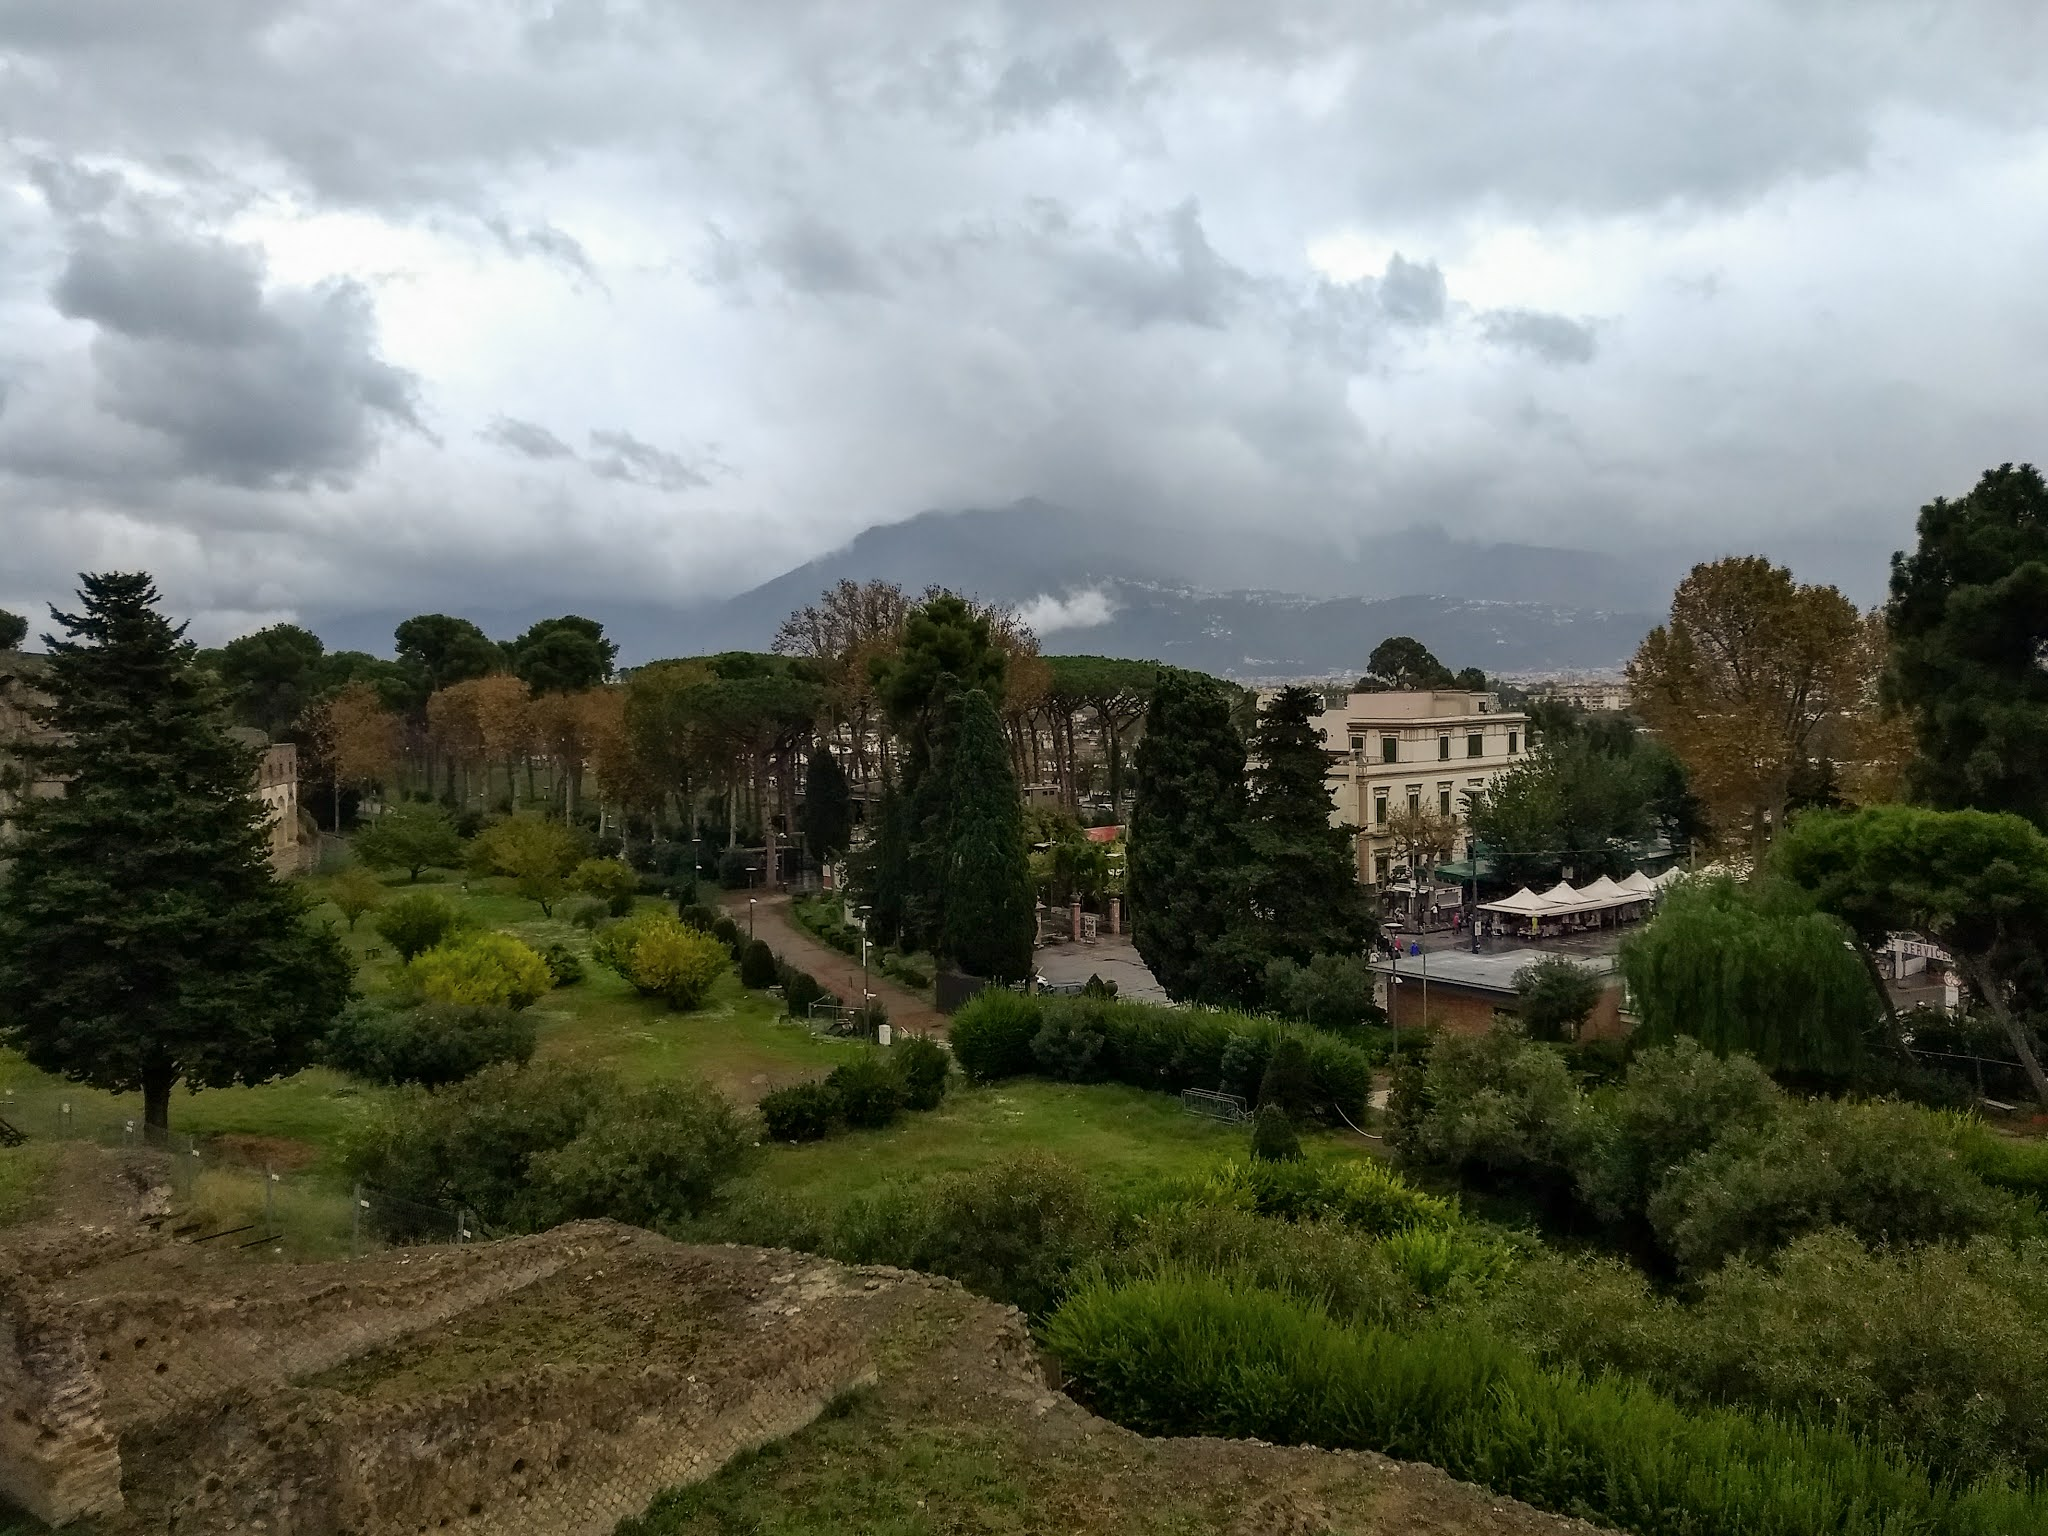 Views from the historic site of Pompeii with Mount Vesuvius in the distance.